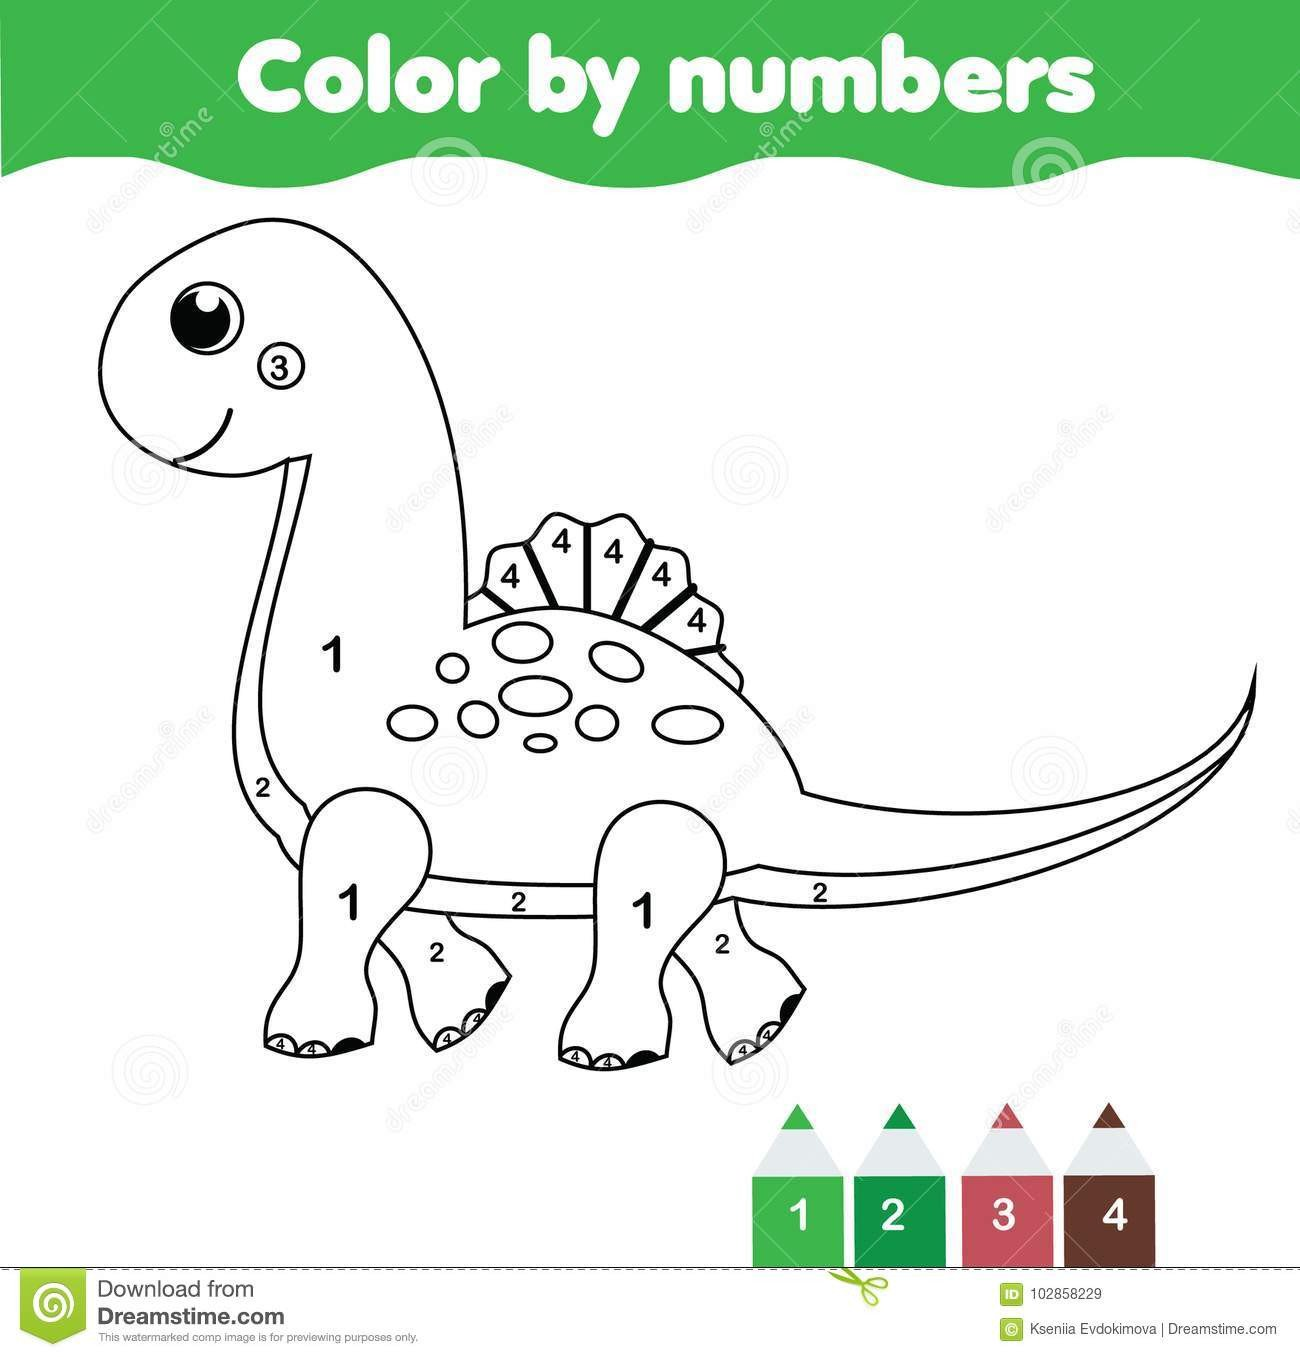 Dinosaur Worksheets for Preschoolers Children Educational Game Coloring Page with Cute Dinosaur